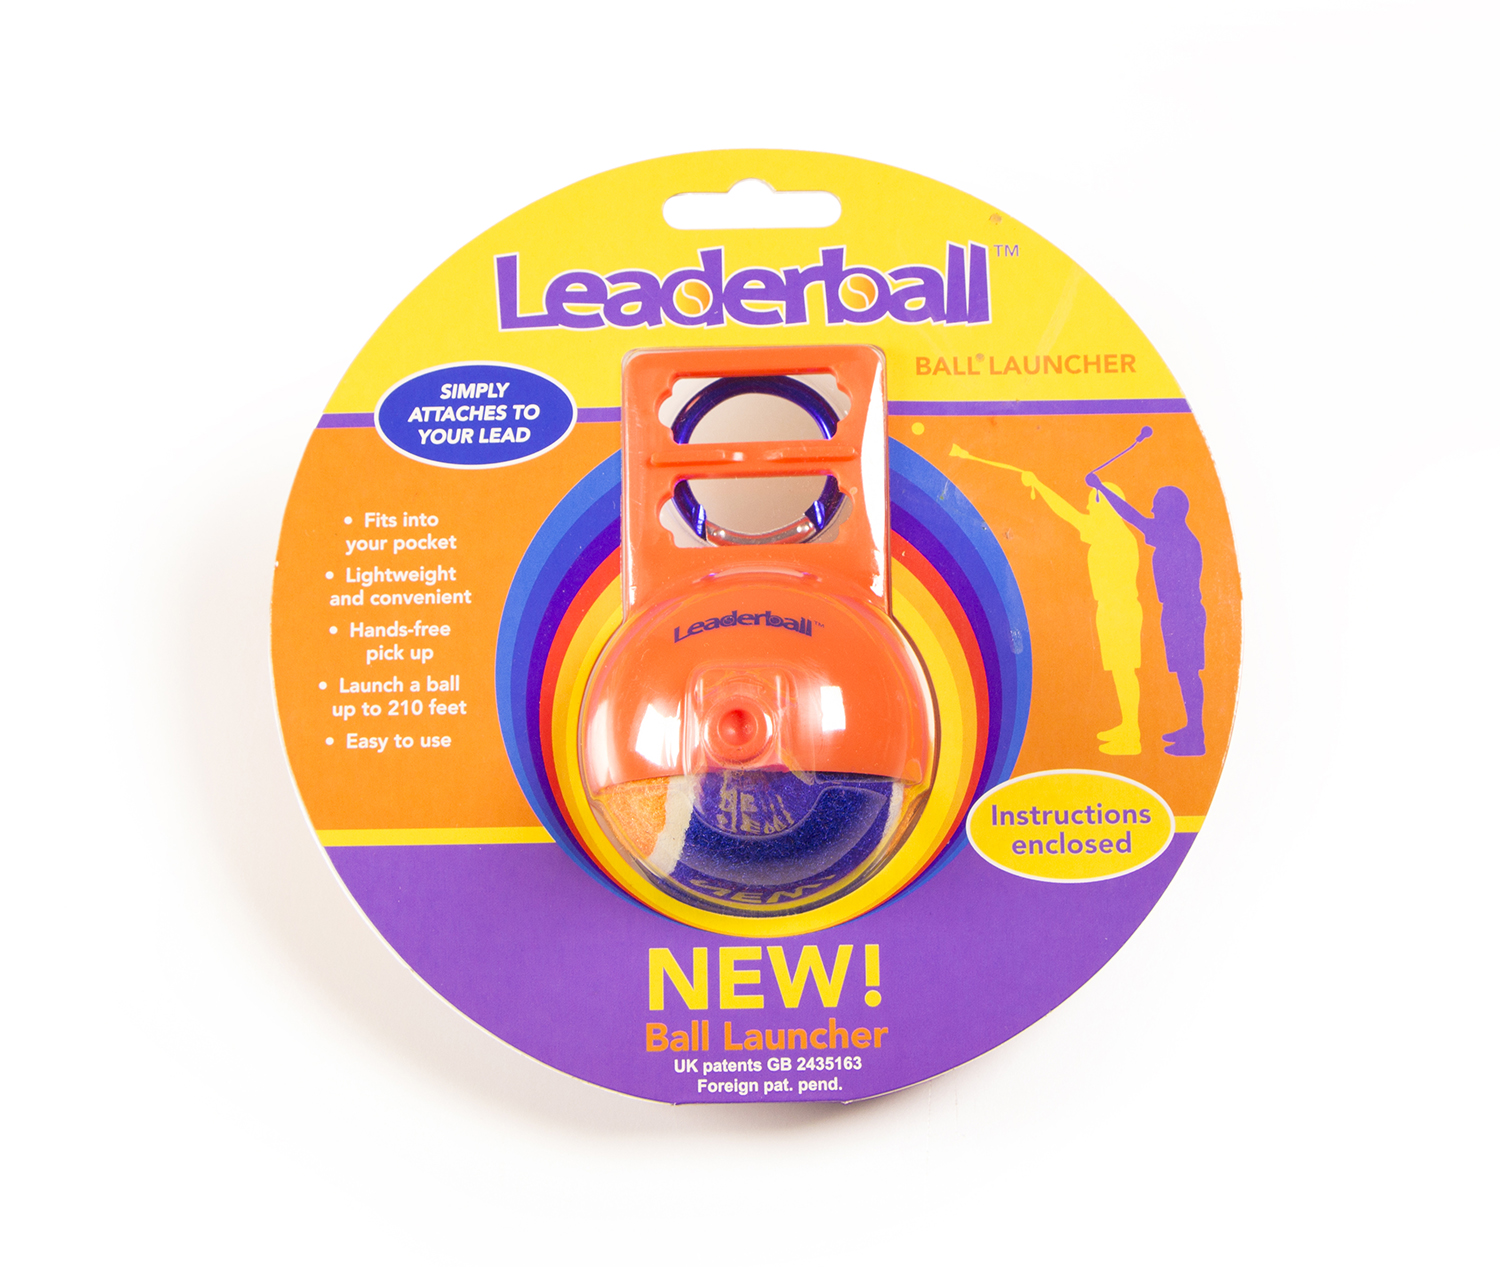 Leaderball ball launcher rood